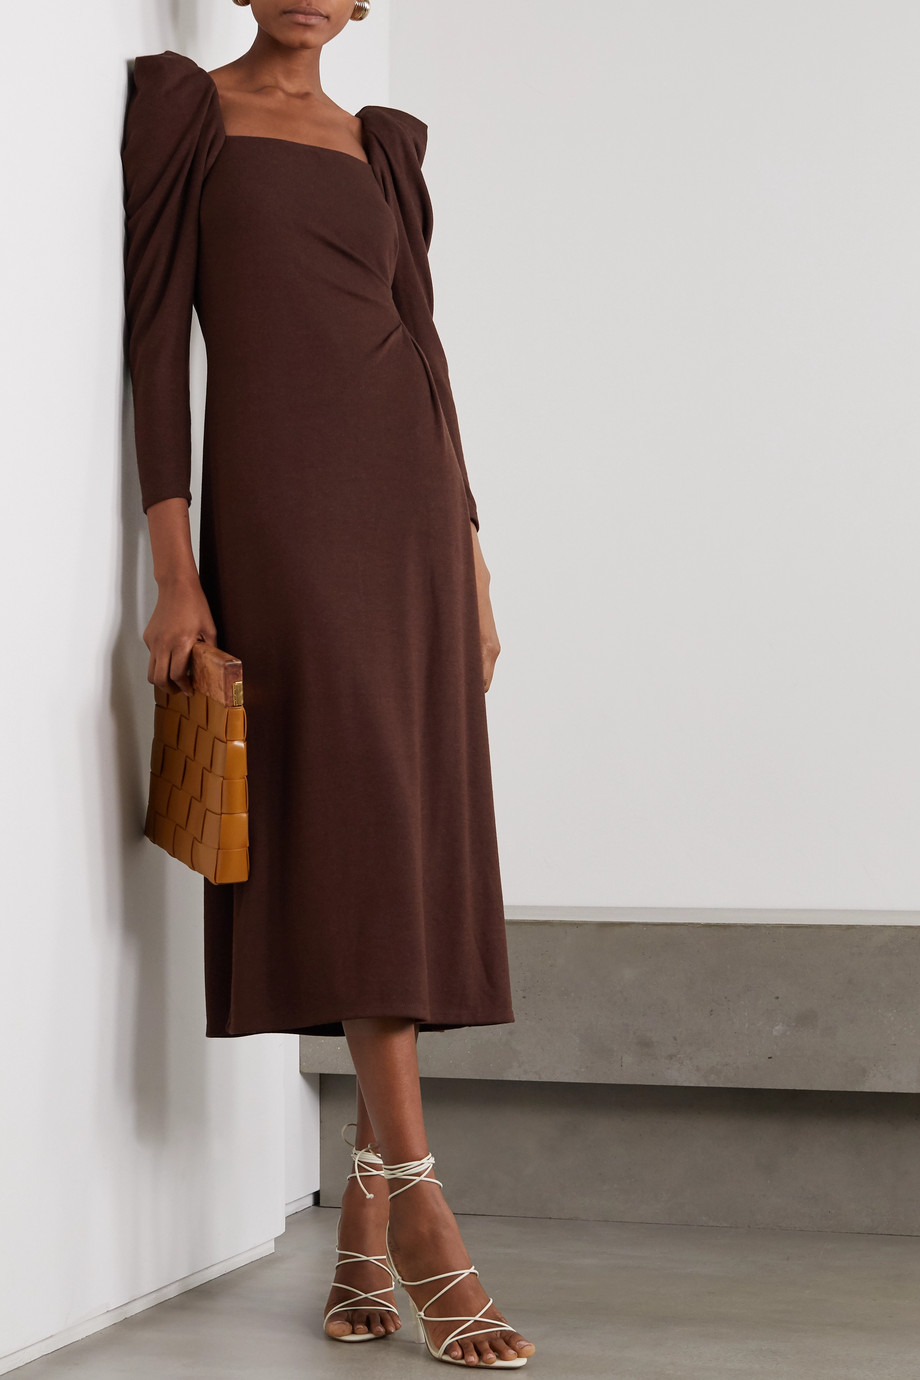 Johanna Ortiz Ember Of A New World ruched backless crepe midi dress